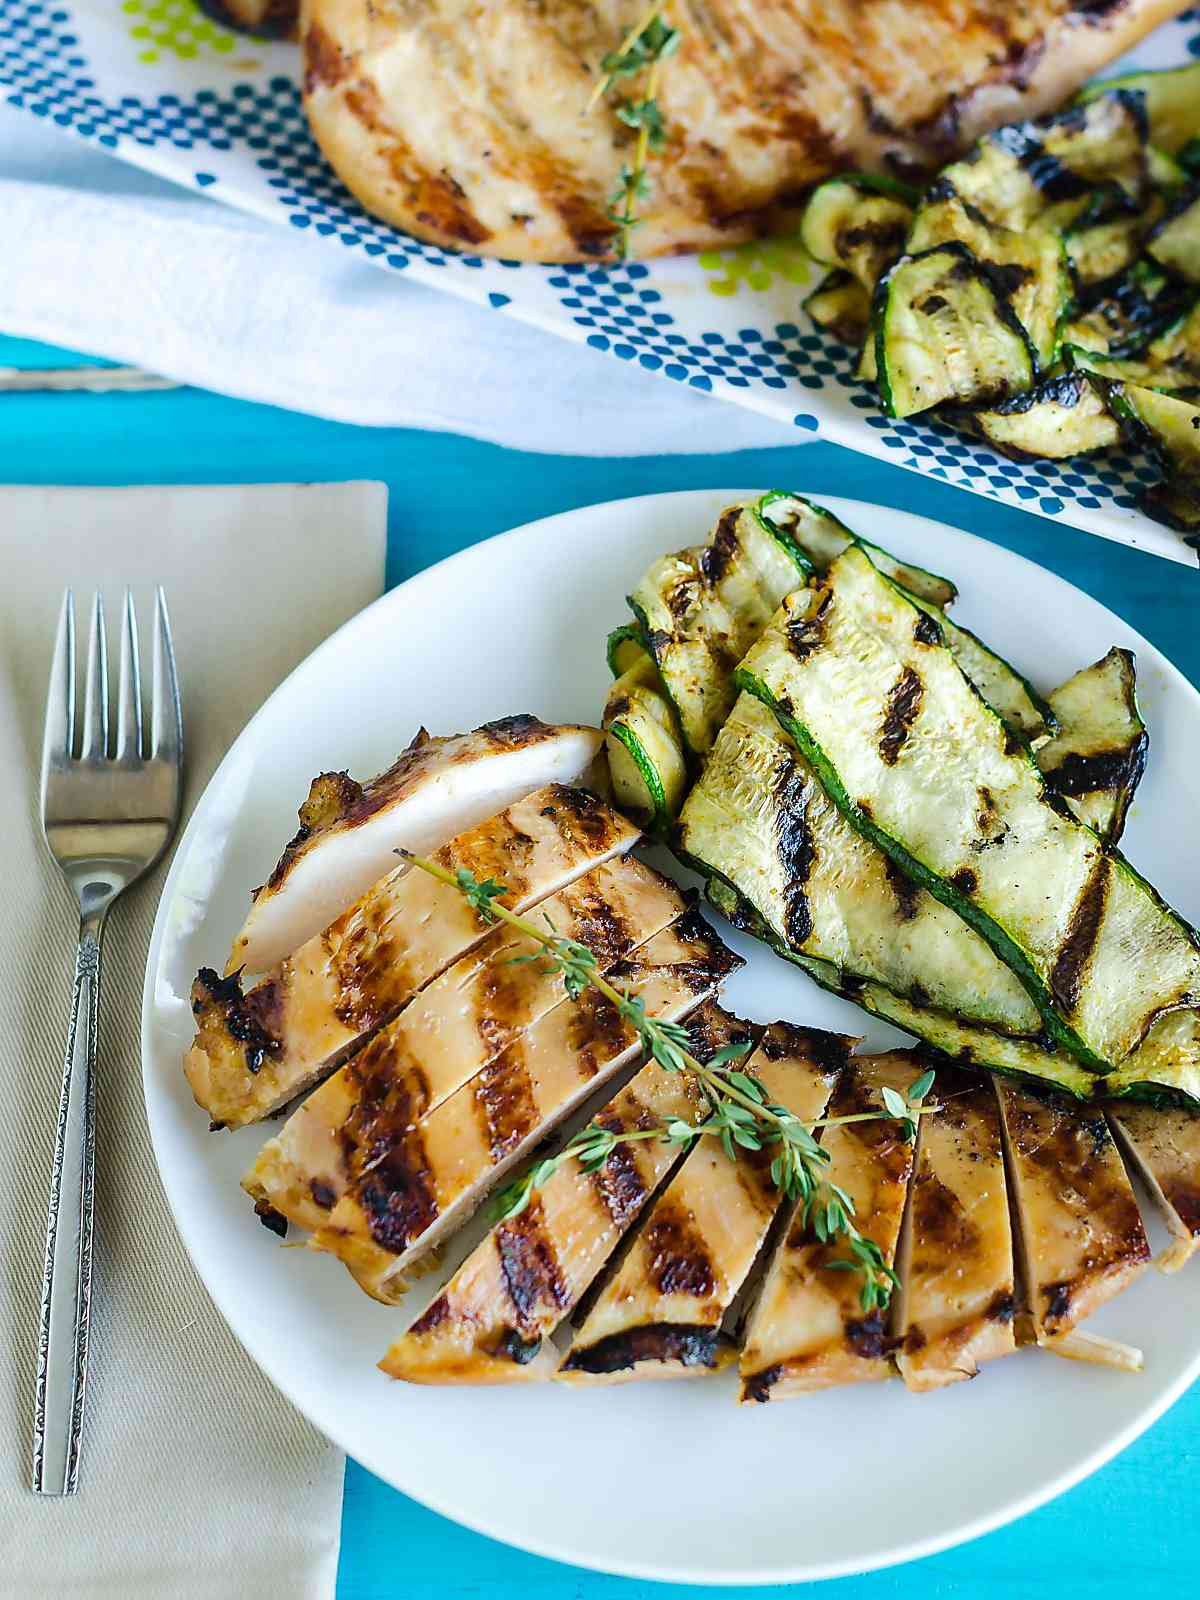 a plate of grilled teriyaki chicken with grilled zucchini on the side